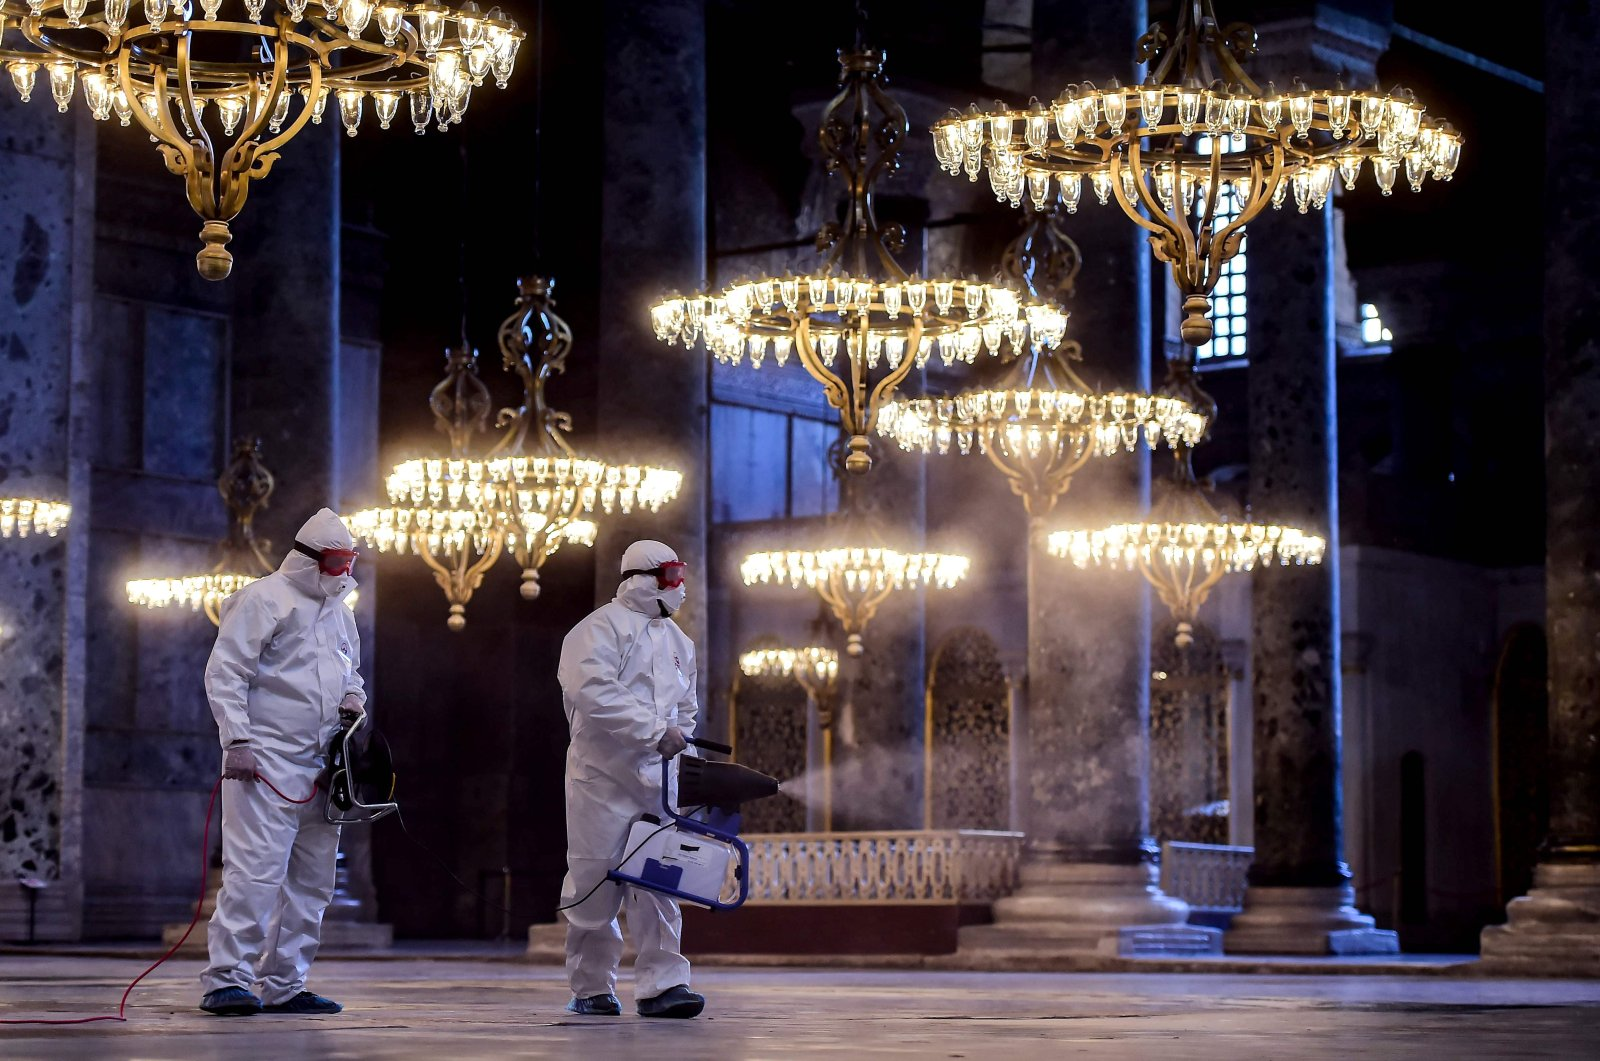 Employees of the Fatih Municipality wearing protective suits disinfect the Hagia Sophia to prevent the spread of the COVID-19, Istanbul, March 13, 2020. (AFP Photo)